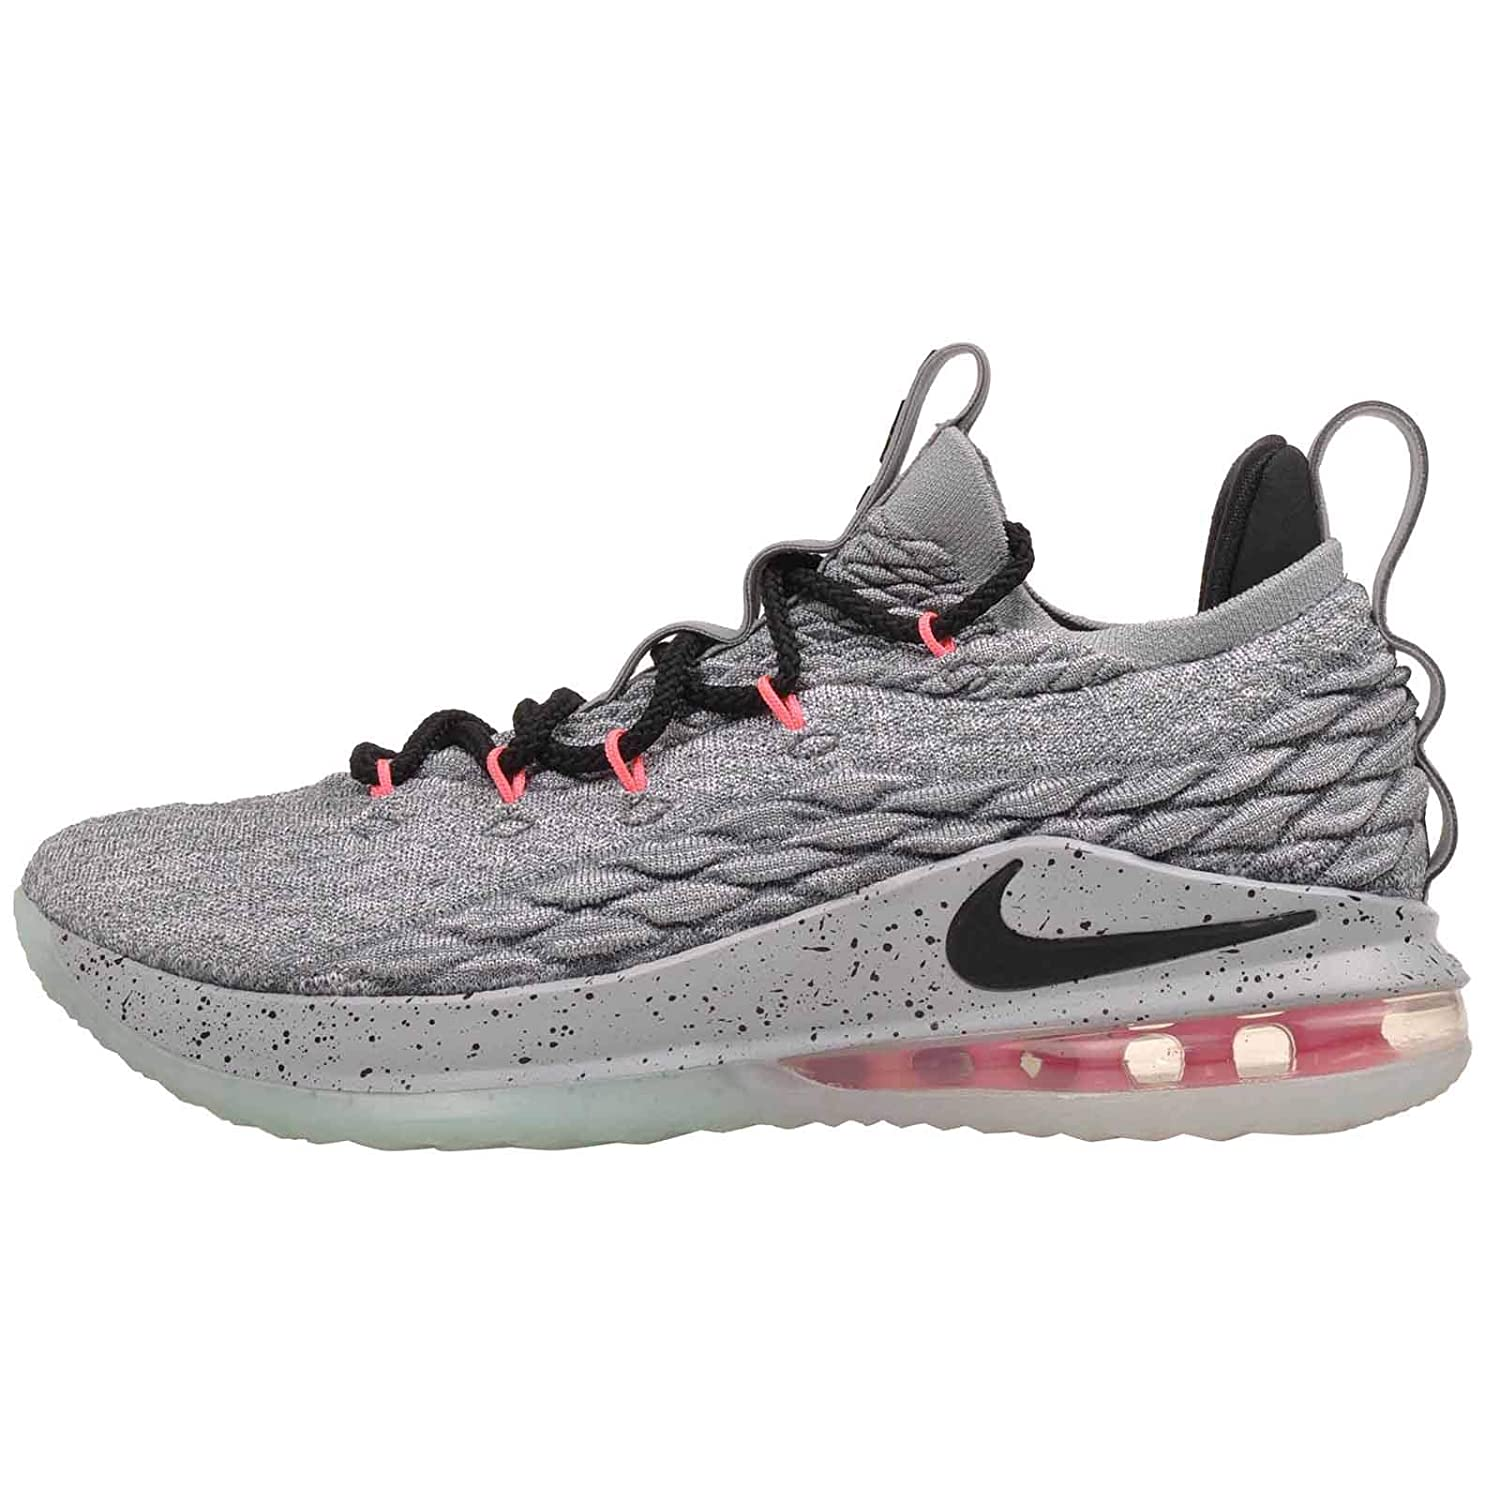 best service 36b50 073a1 Nike Men's Lebron 15 Low Basketball Shoes: Amazon.ca: Shoes ...